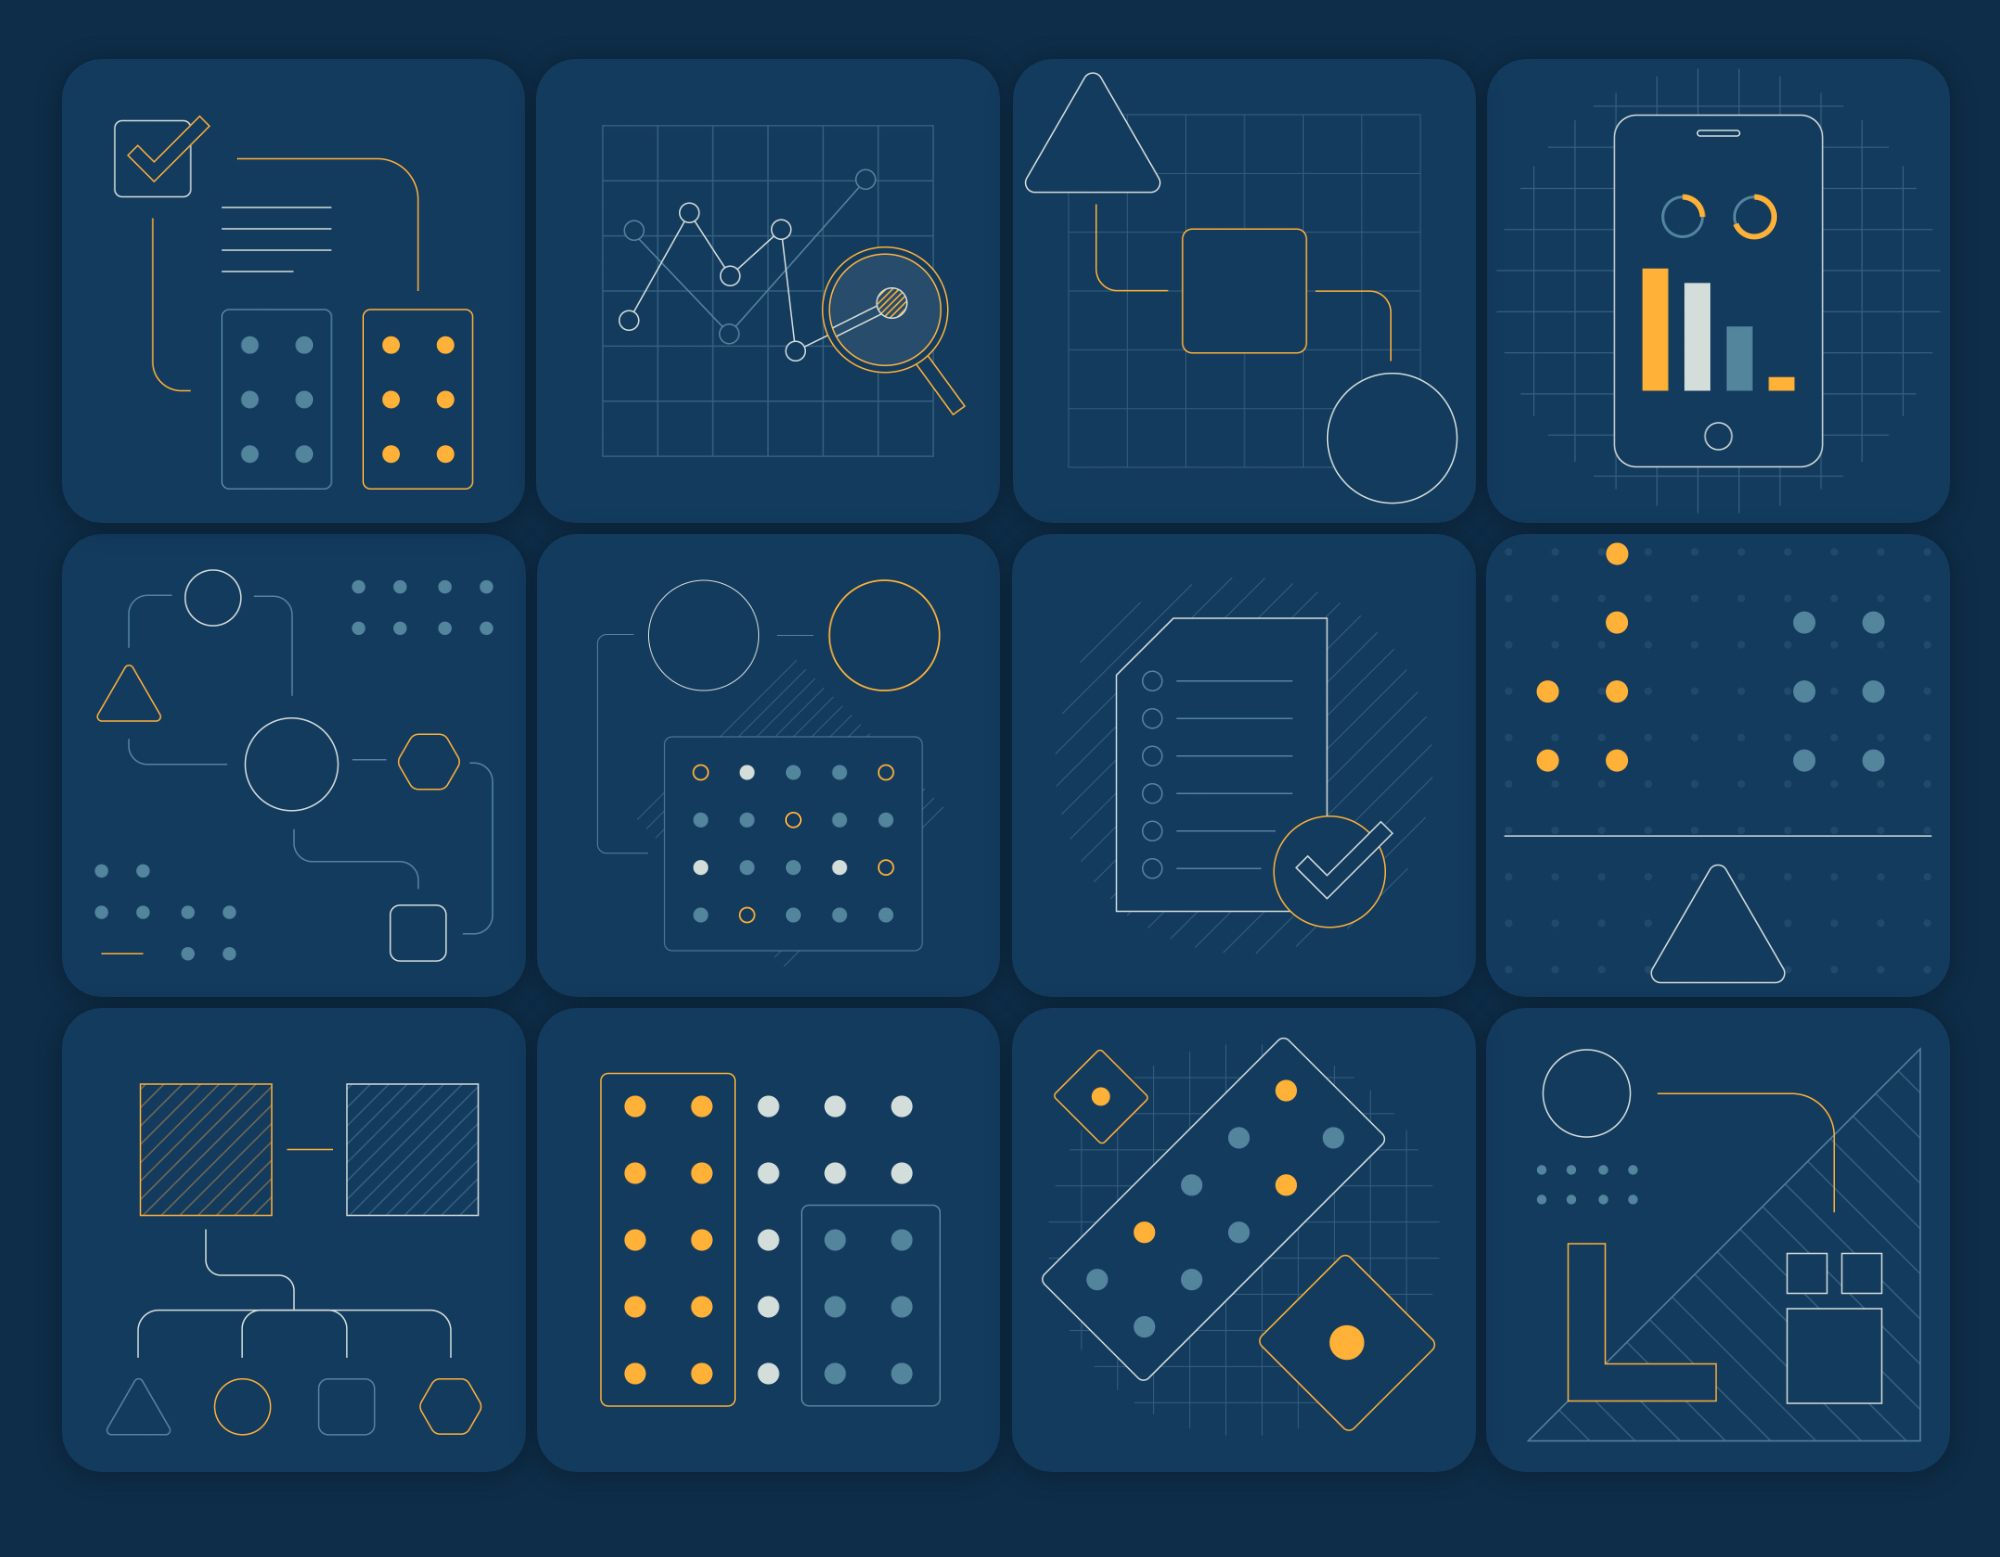 EC3 Abstract Illustrations created by Data Driven Design